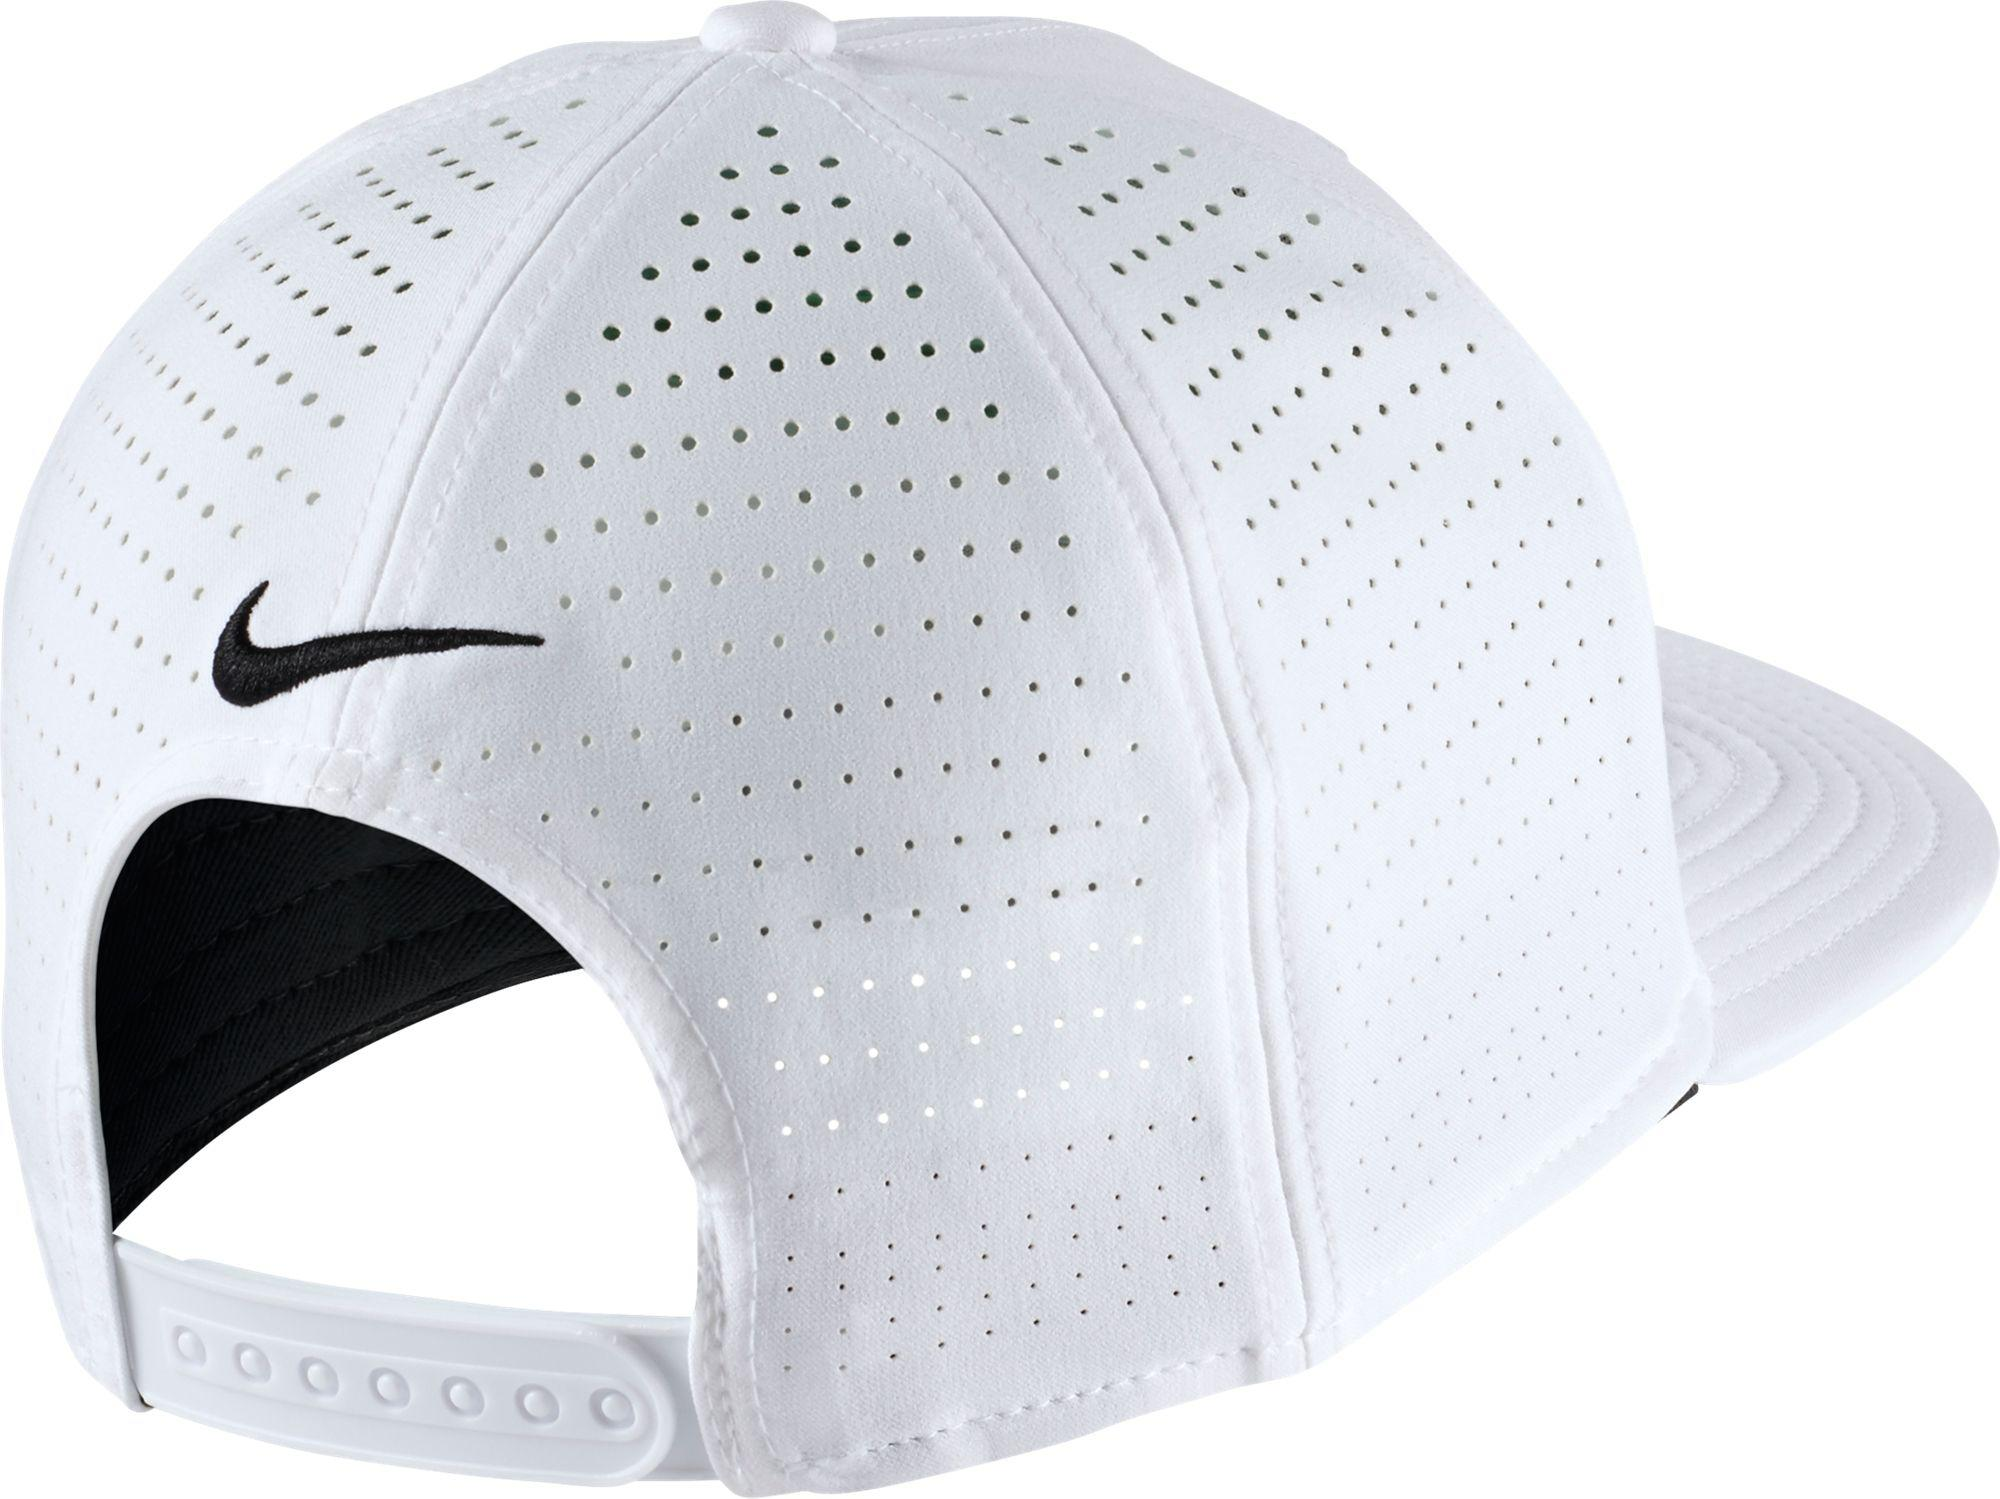 Lyst - Nike Oregon Ducks Pro Perforated Golf Hat in White for Men bd21558743a